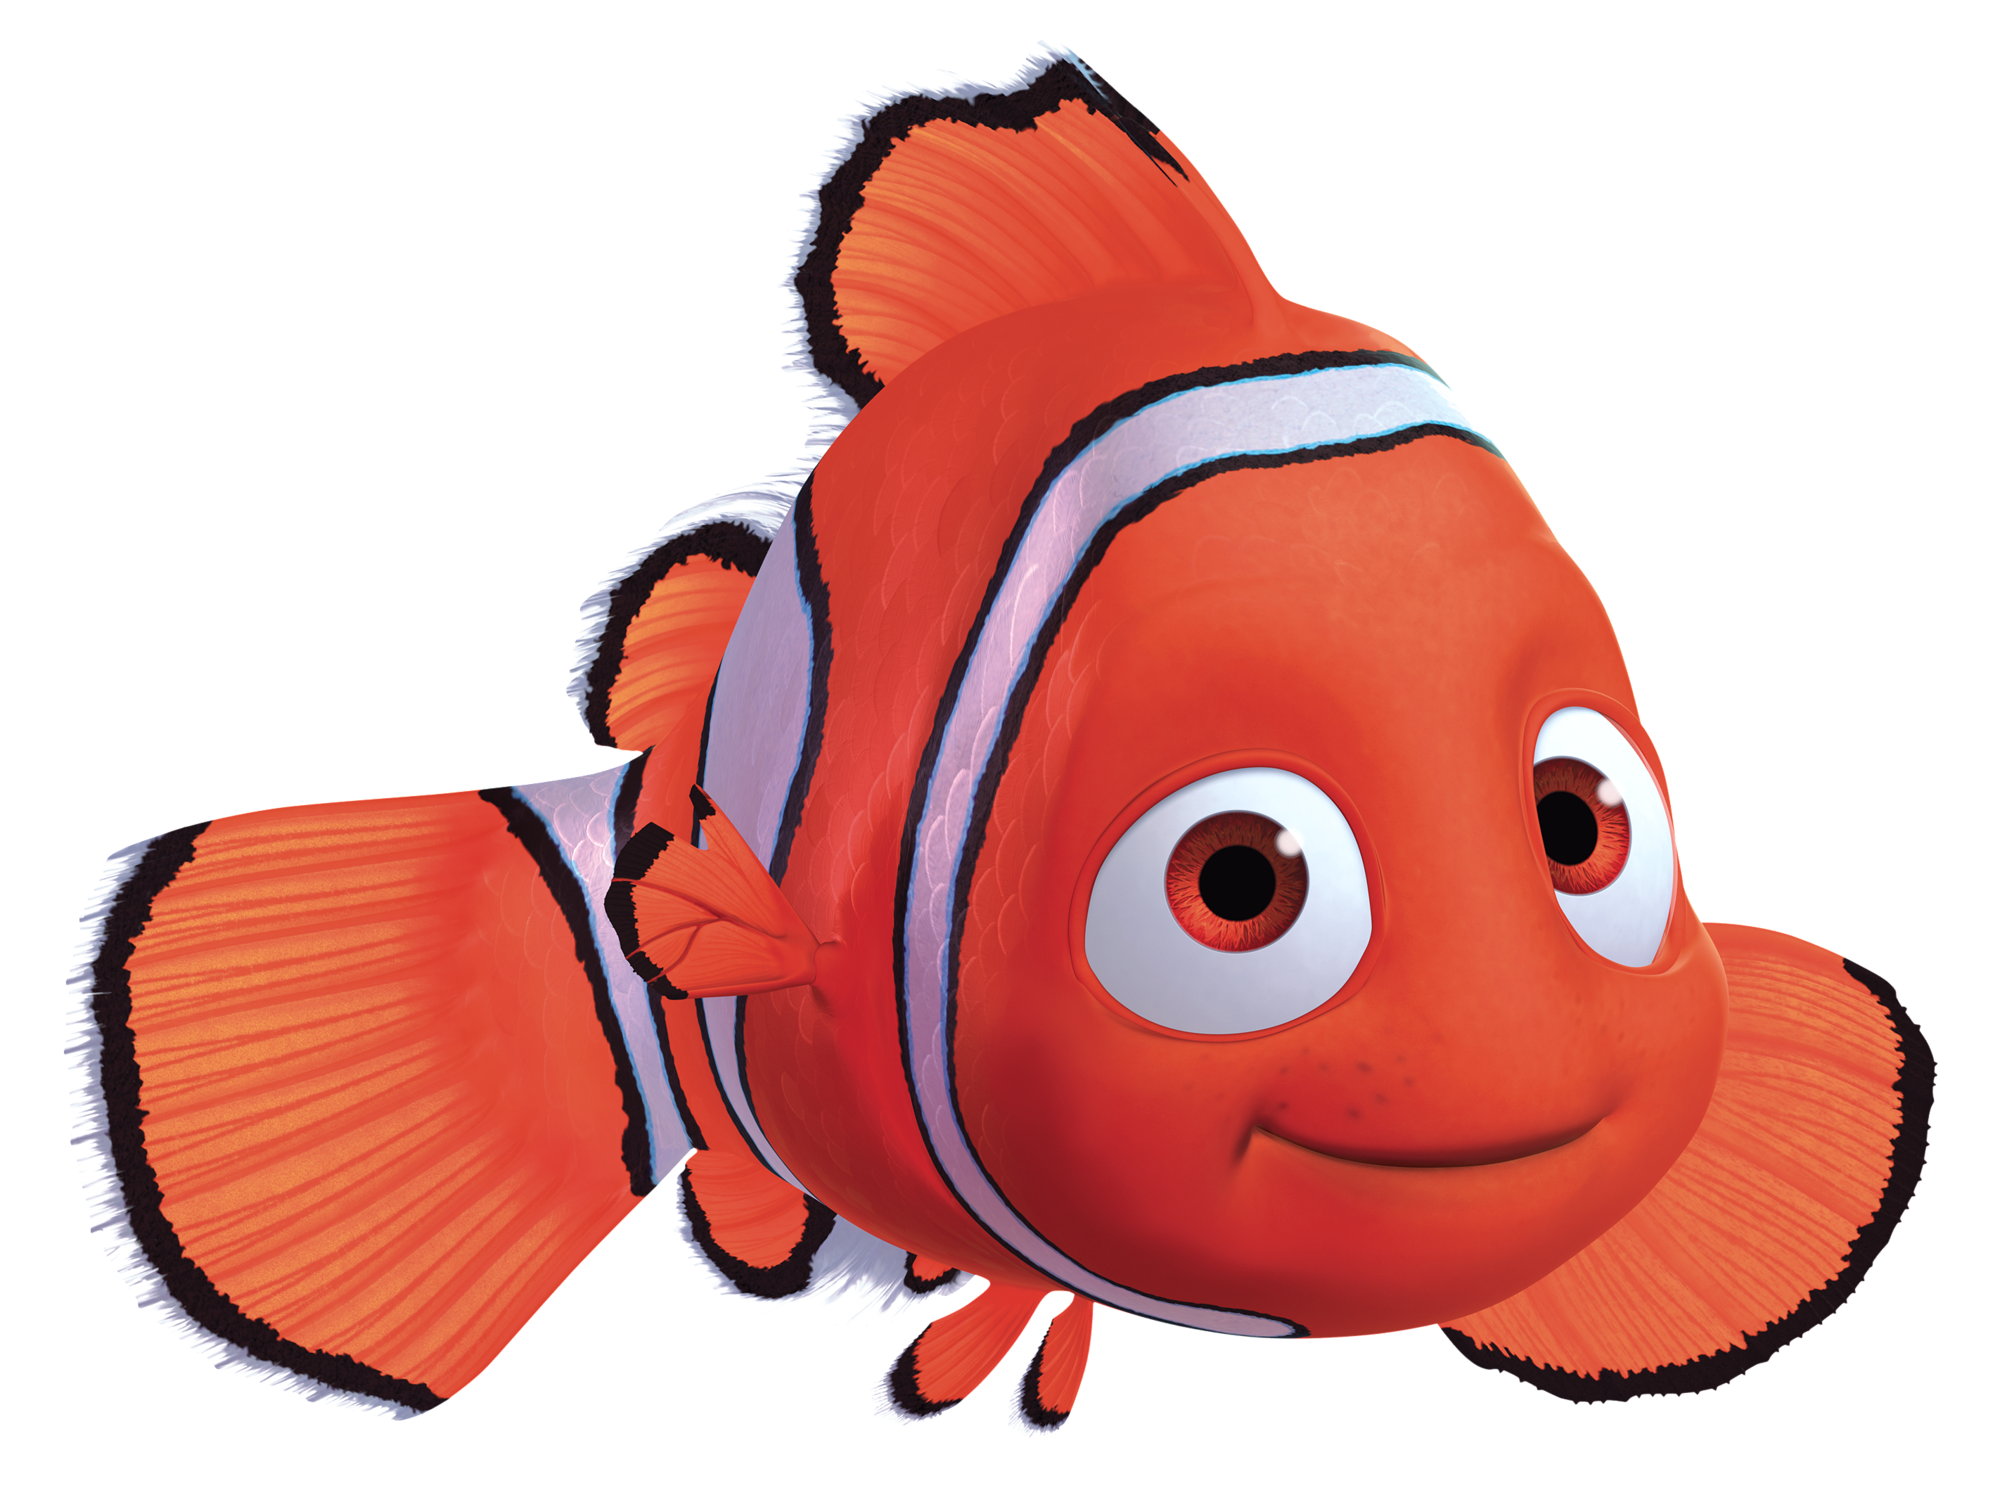 Disney angel fish dory clipart picture free Nemo | Disney Wiki | FANDOM powered by Wikia picture free